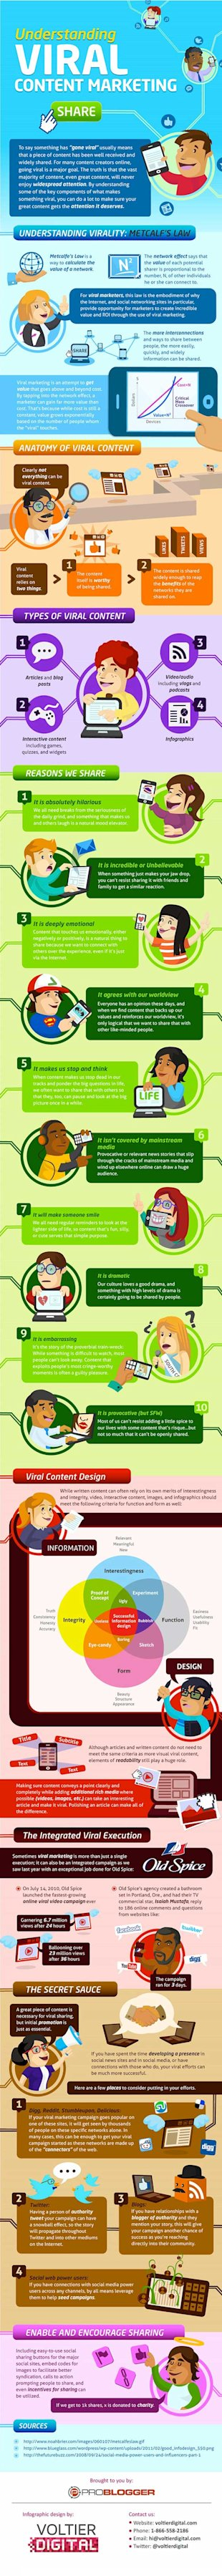 17 Ways to Succeed in Viral Content Marketing image viral marketing infographic